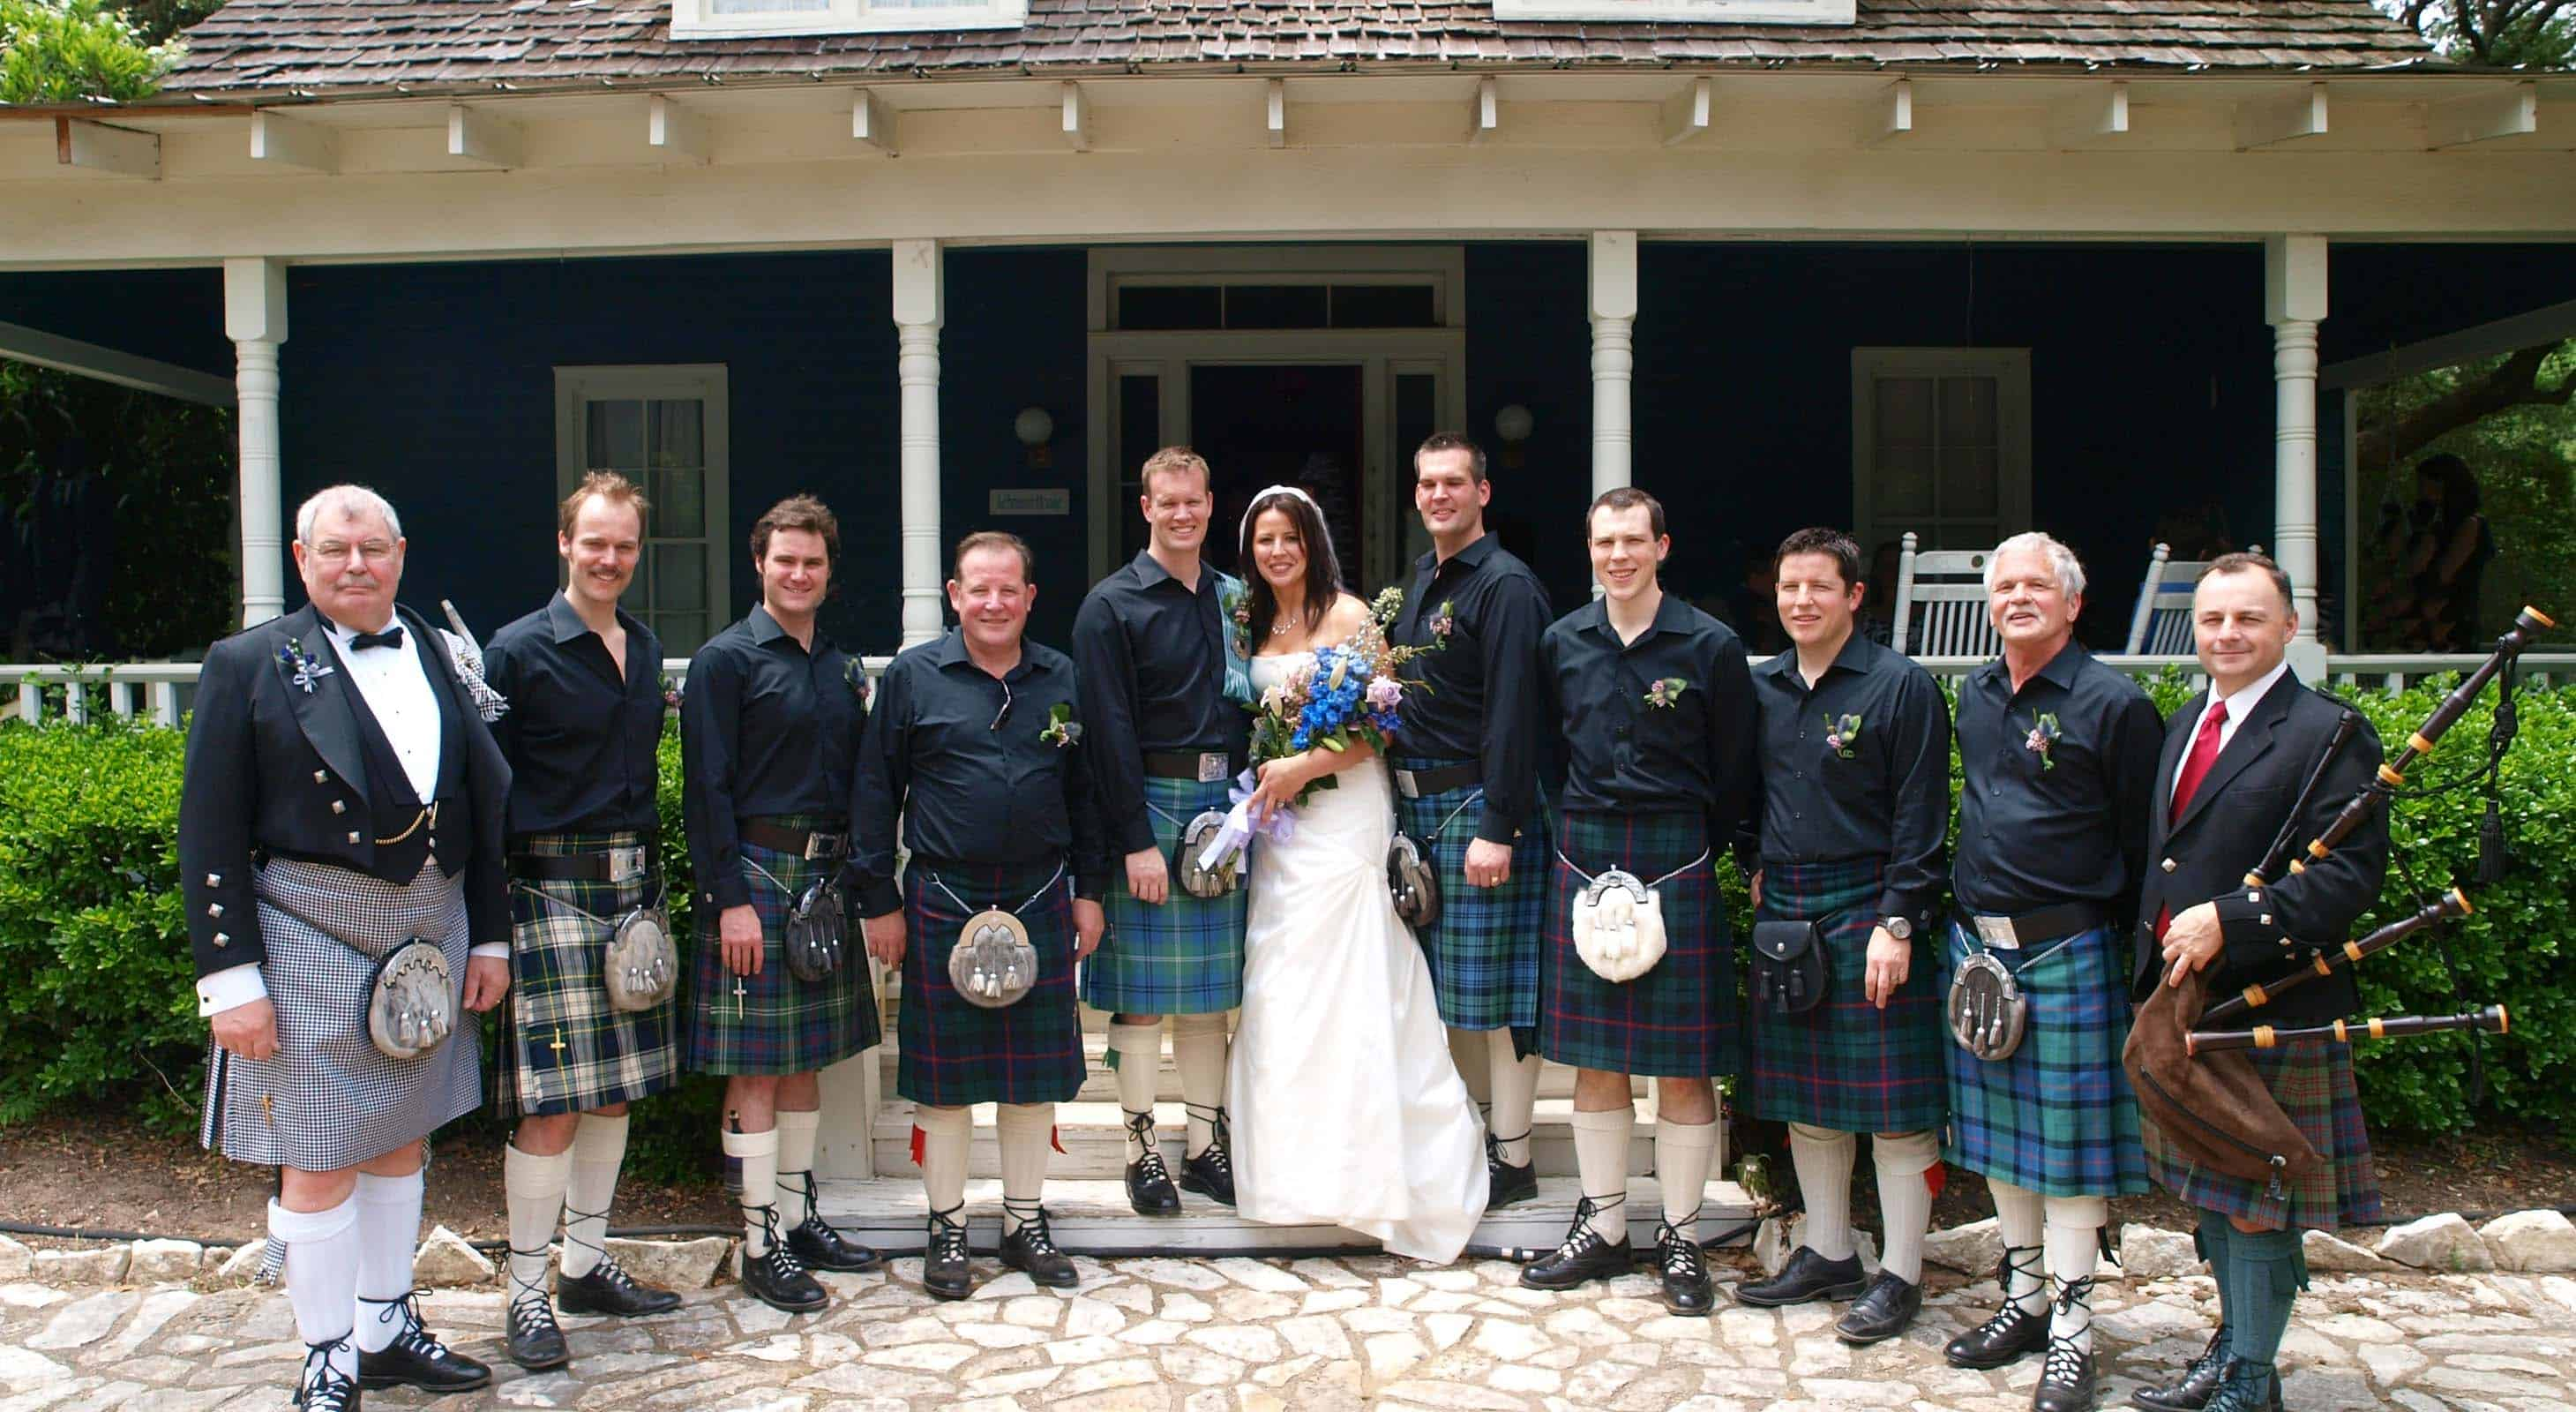 Wedding party in traditional Scottish attire standing in front of BlissWood Ranch